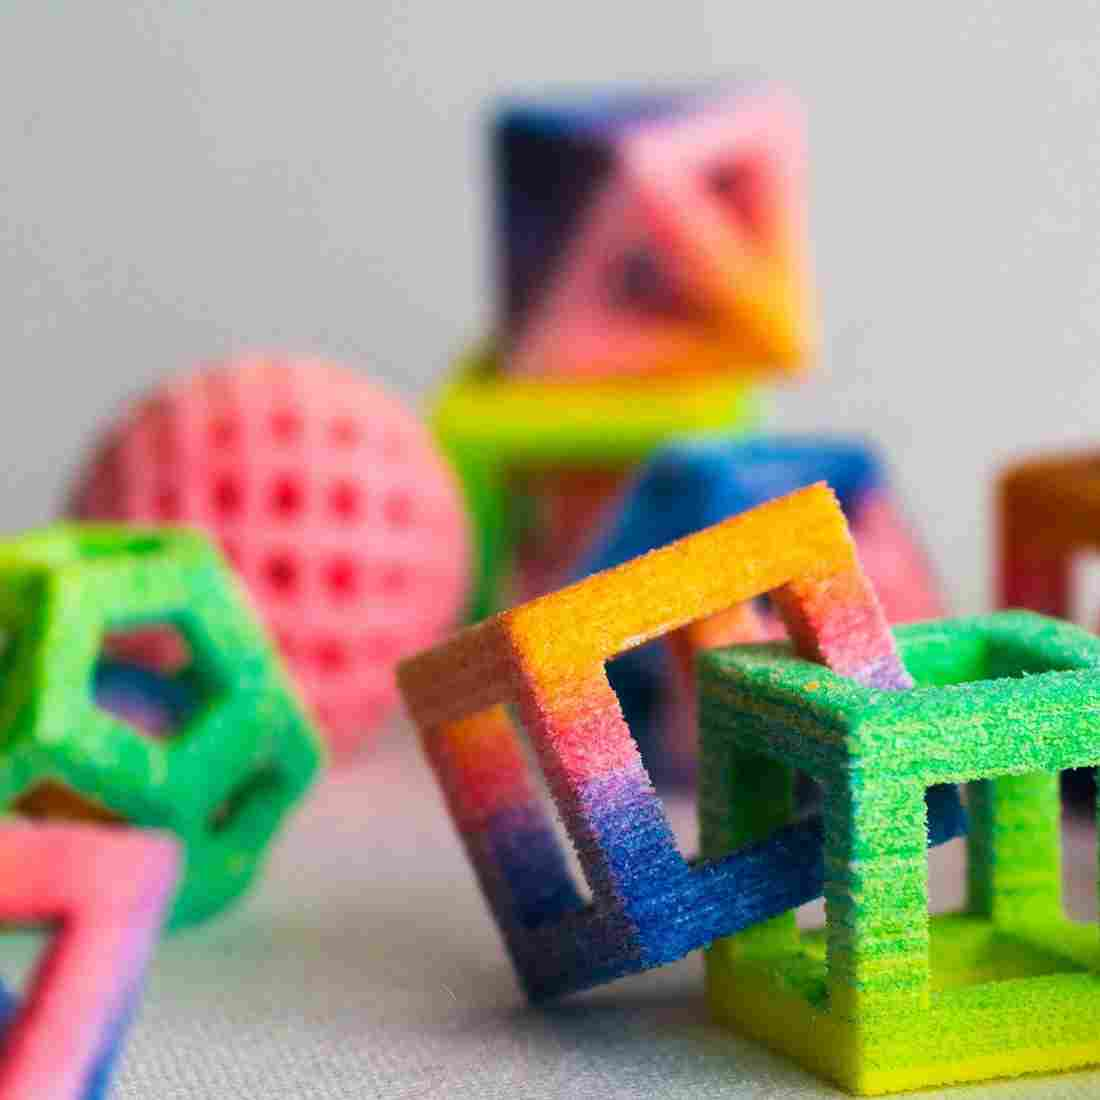 Spinach Dinosaurs To Sugar Diamonds: 3-D Printers Hit The Kitchen